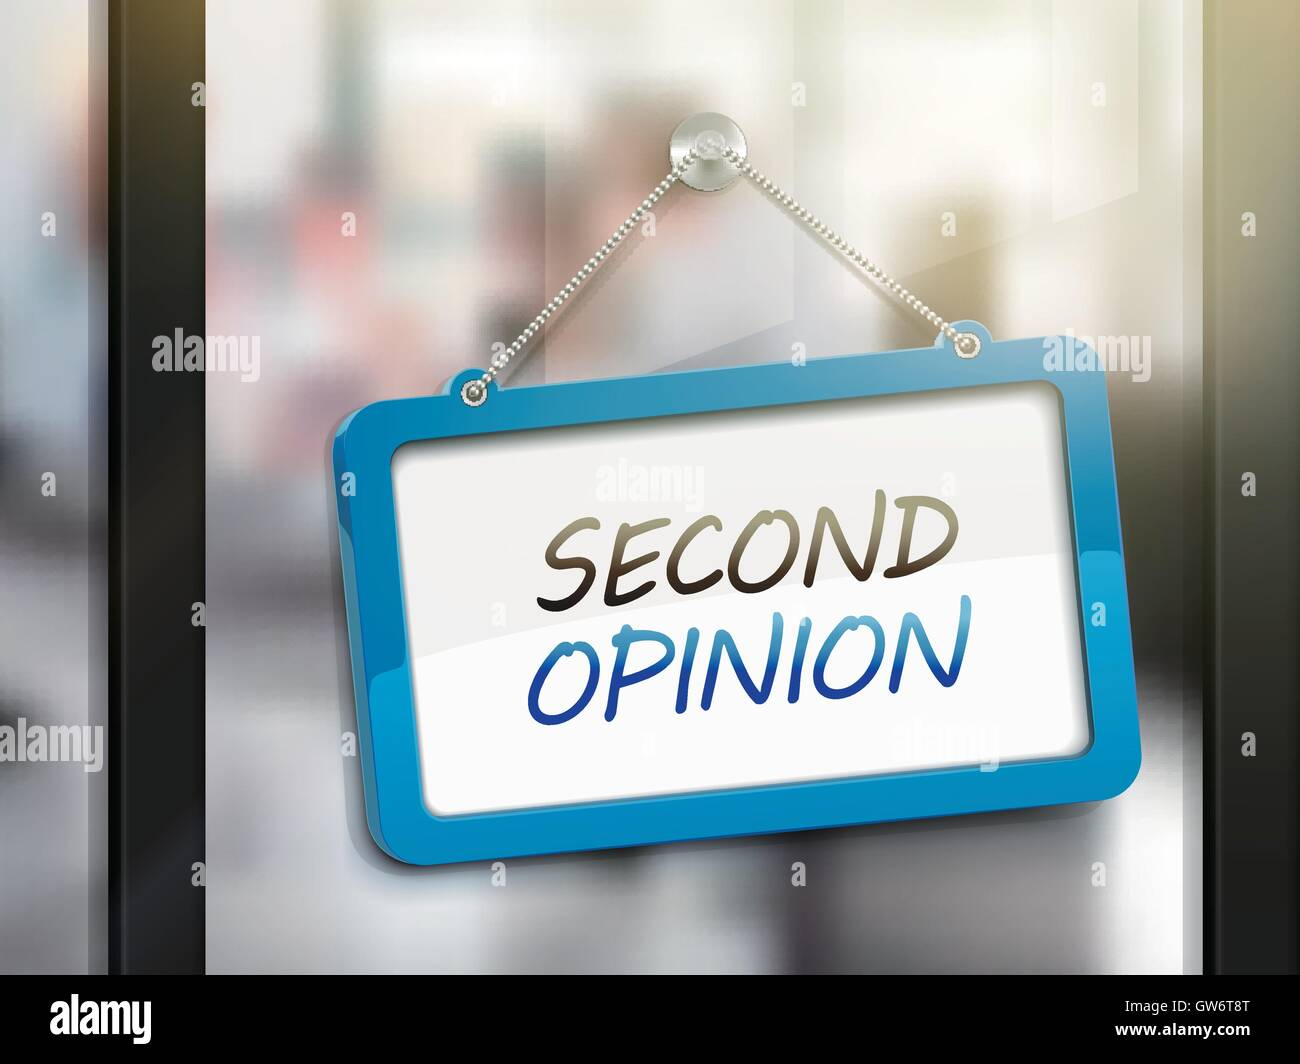 second opinion hanging sign, 3D illustration isolated on office glass door - Stock Vector